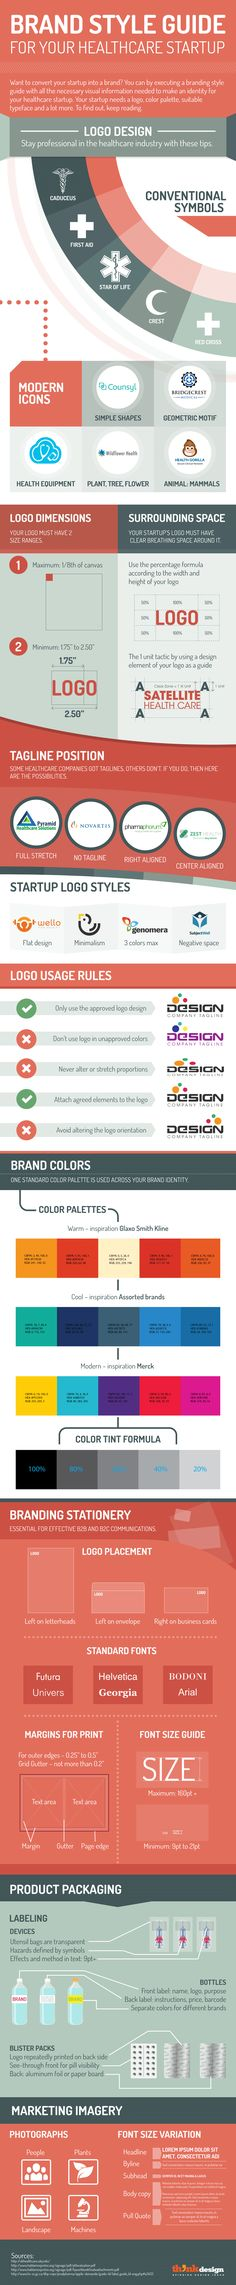 A to Z Branding Style Guide for Your Healthcare Startup – Think Design Healthcare Design, Pull Quotes, Brand Style Guide, Start Up Business, Fashion Branding, Going To Work, Web Design, Creative Design, Pink